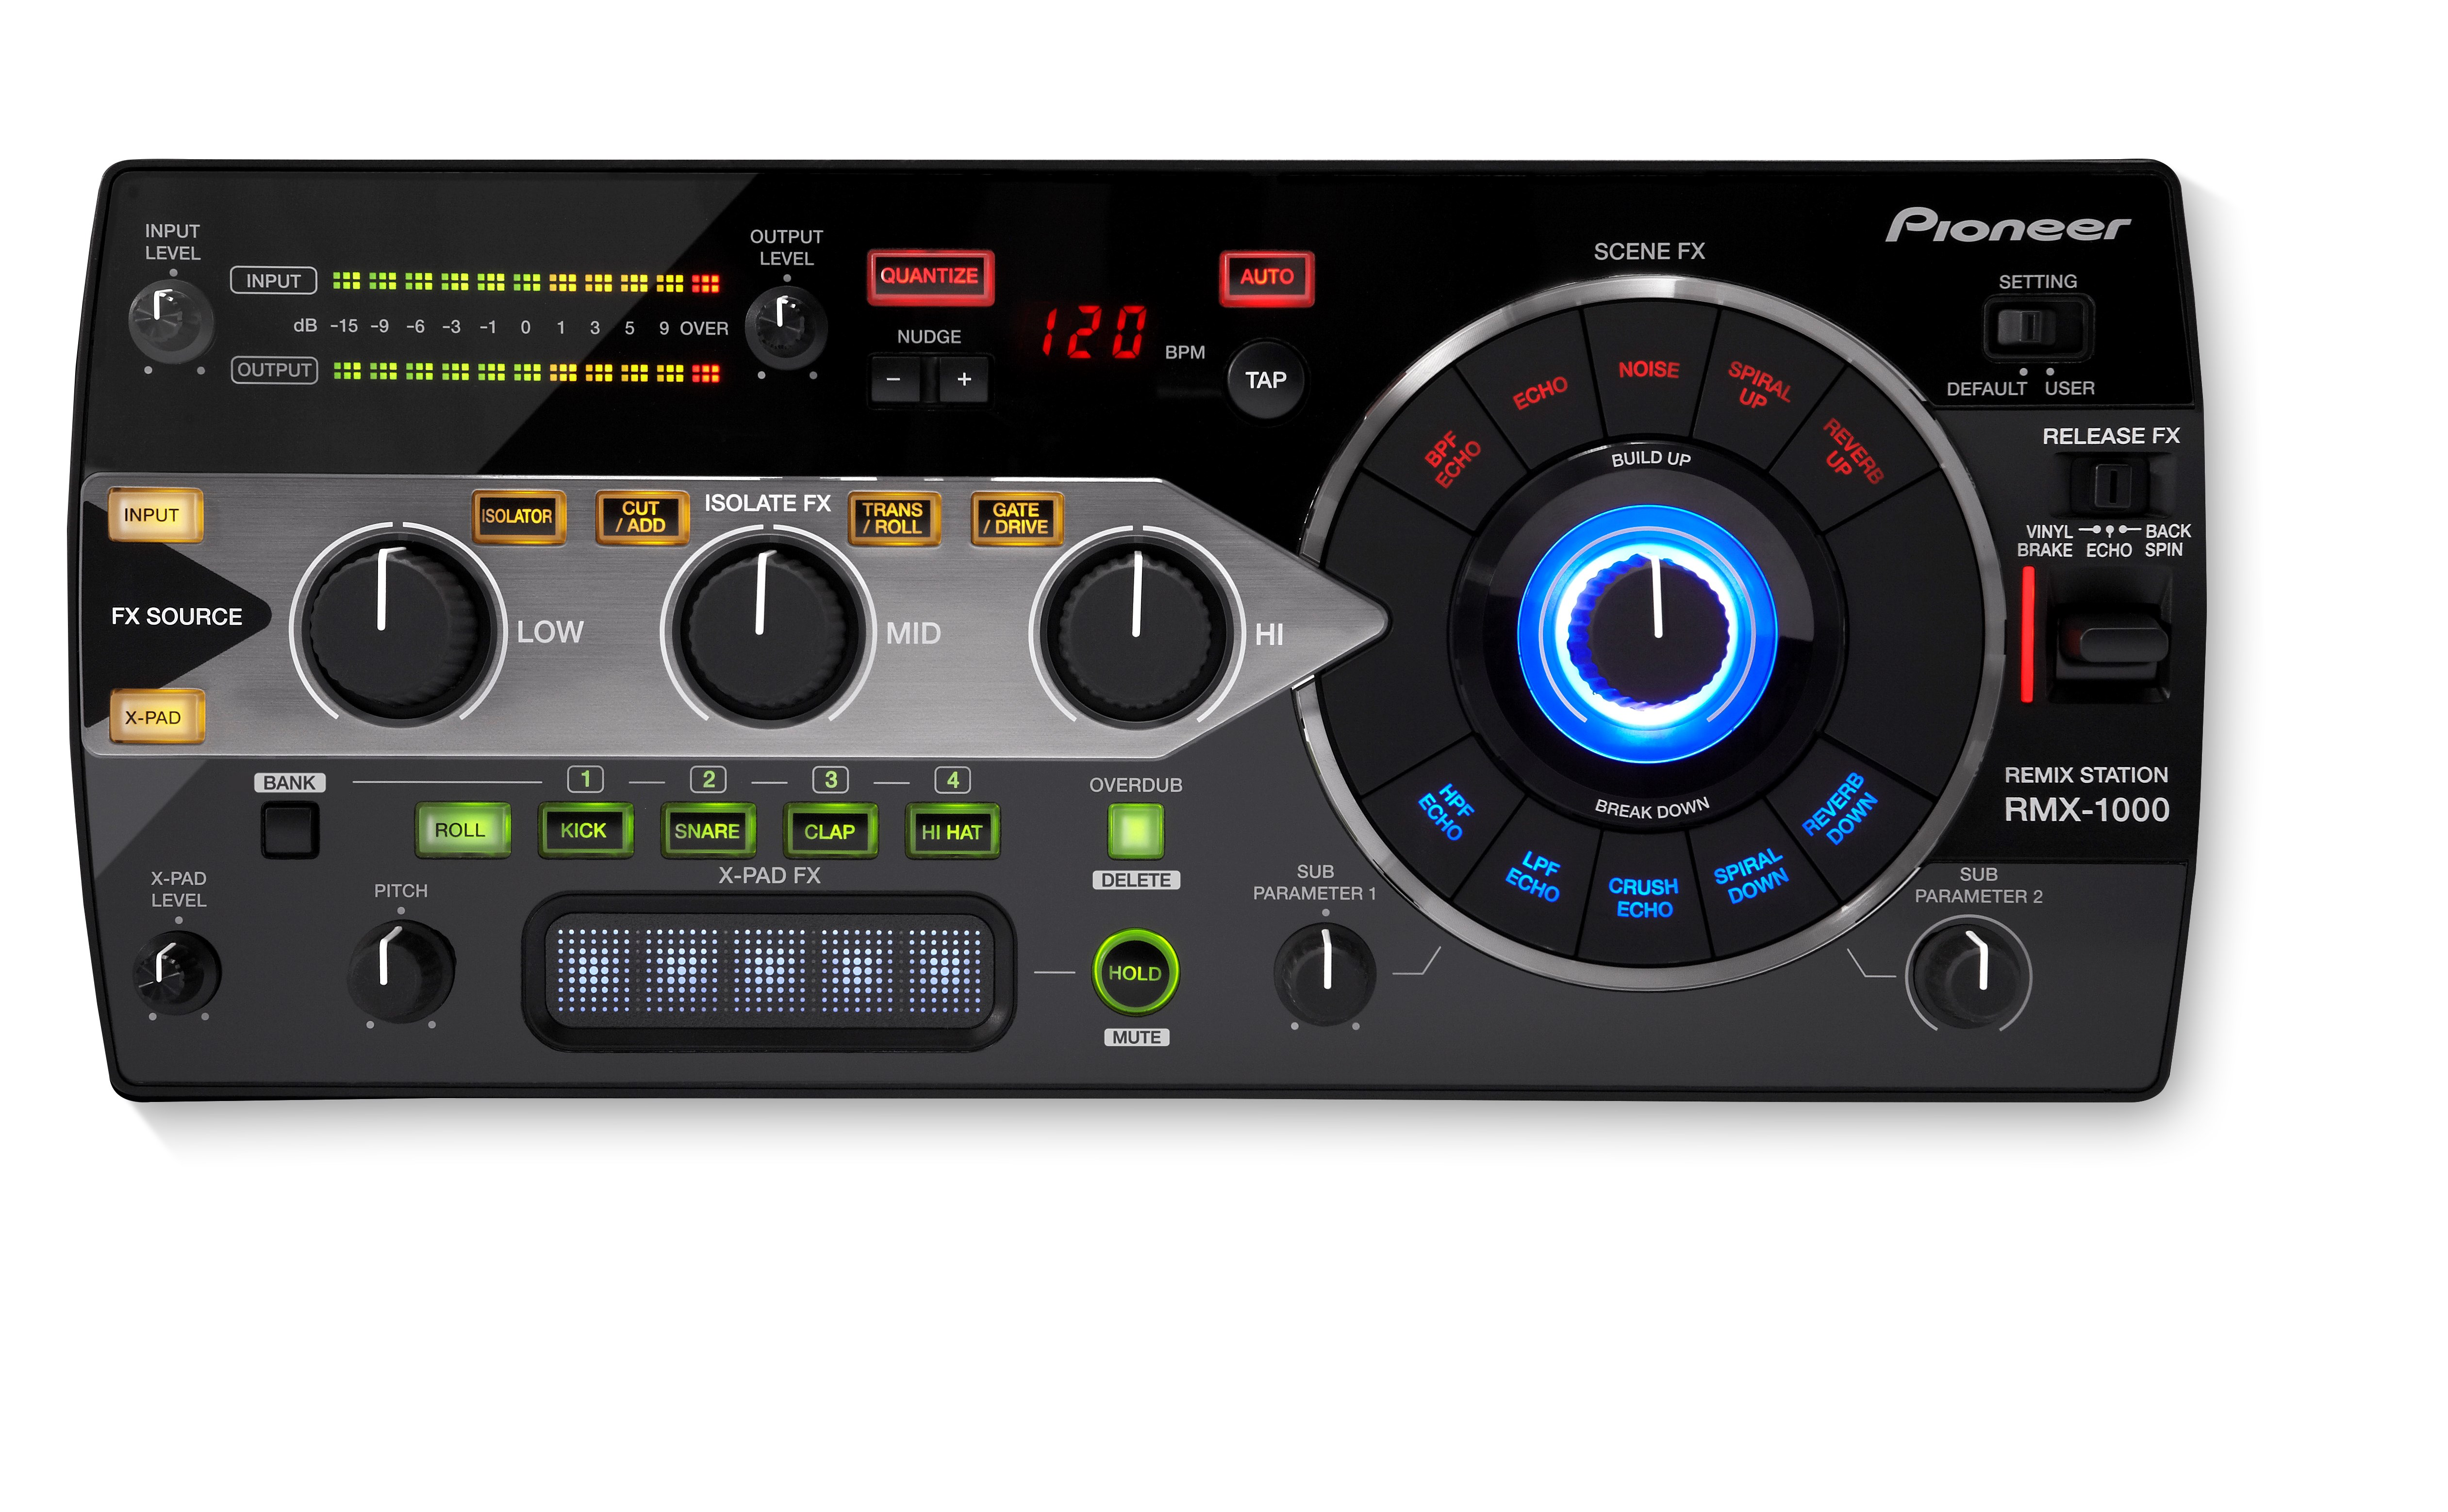 pioneer dj software free download for pc windows 7